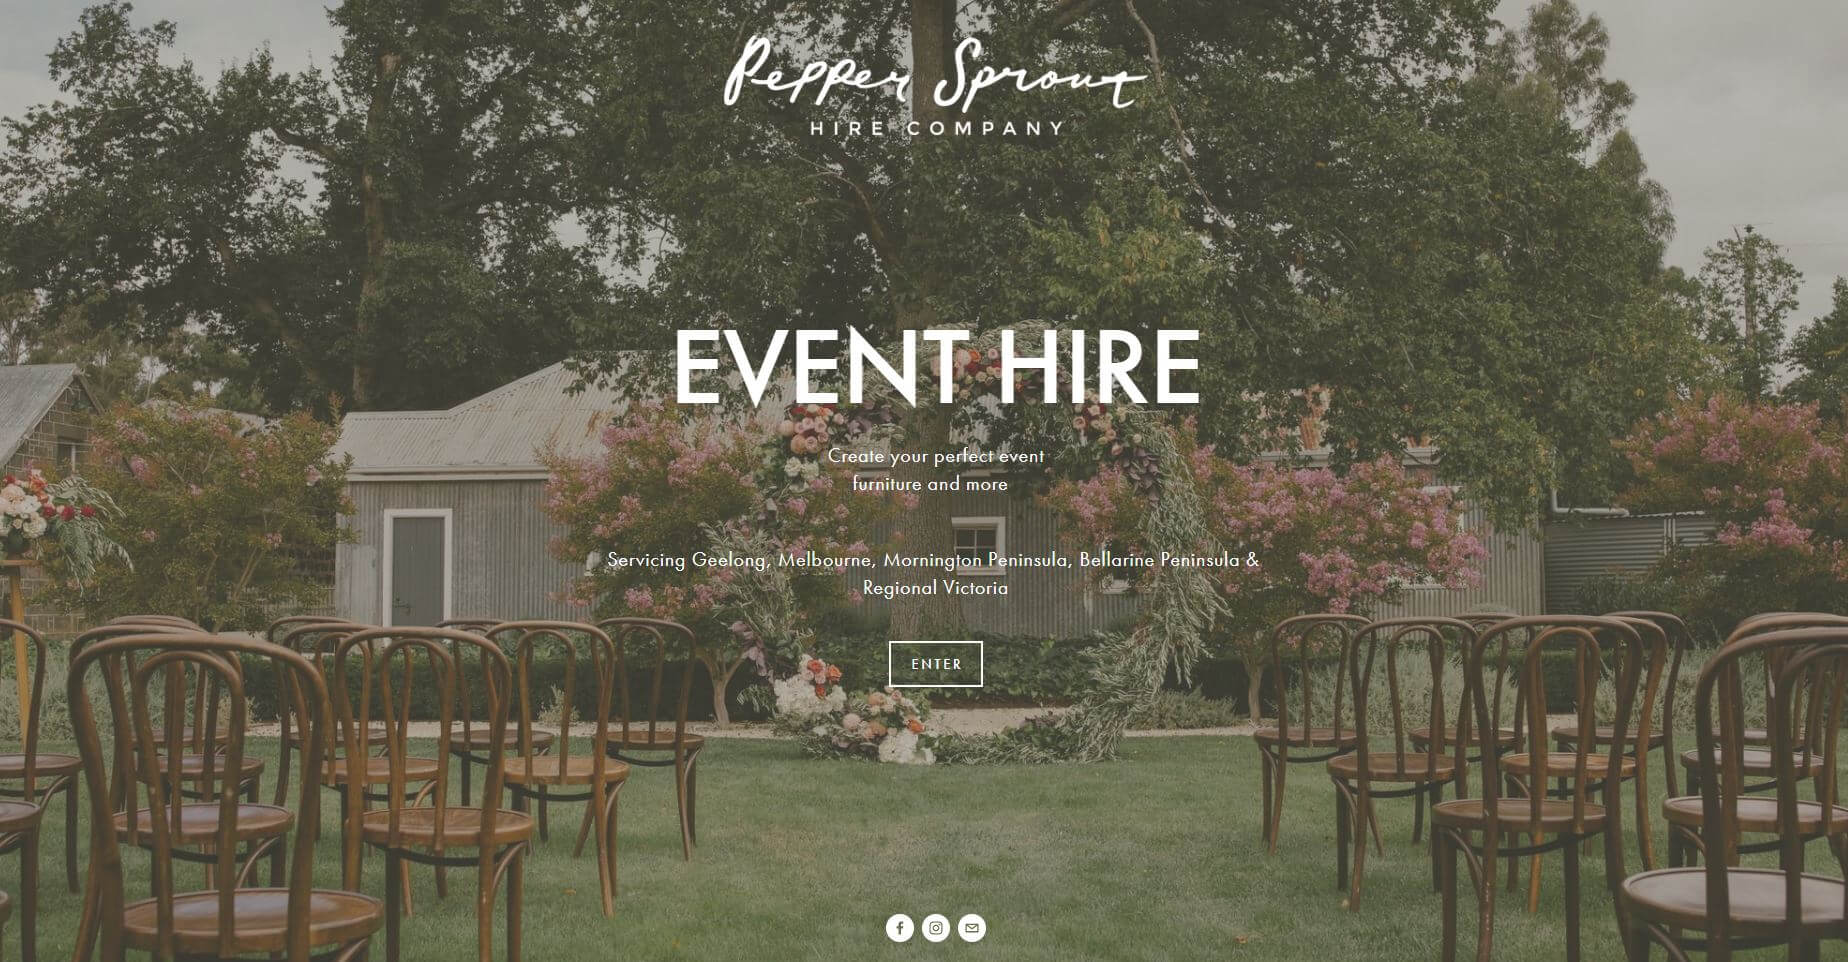 Pepper Sprout Wedding Hire Melbourne